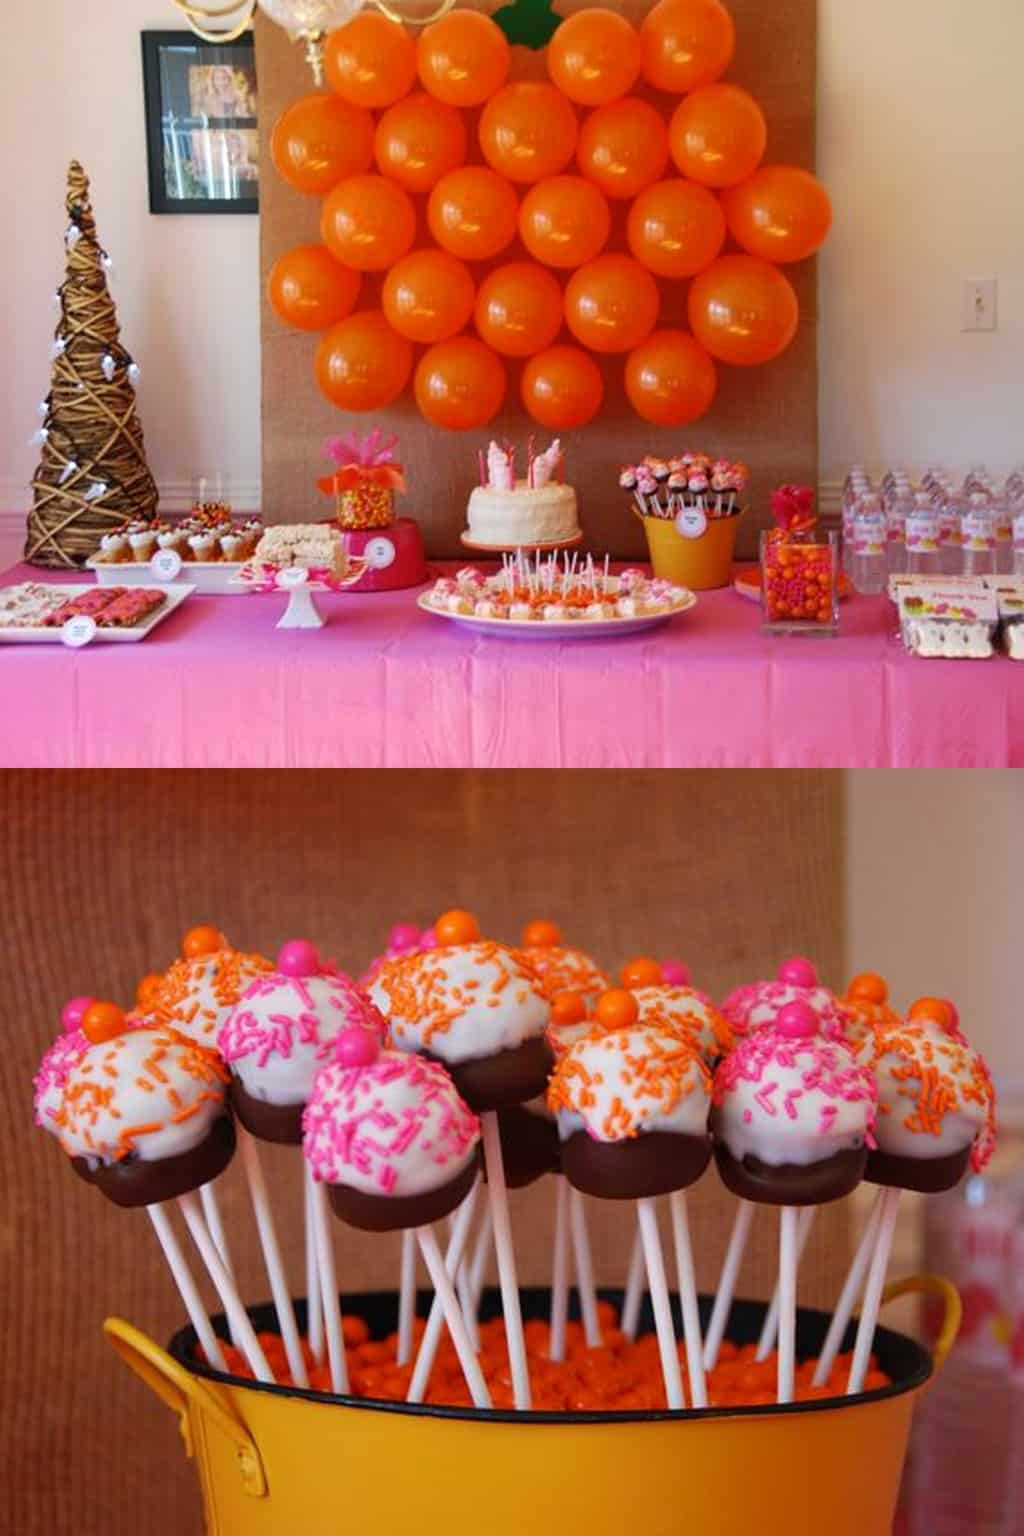 Sweet shop birthday party ideas for 8th birthday for Home sweet home party decorations